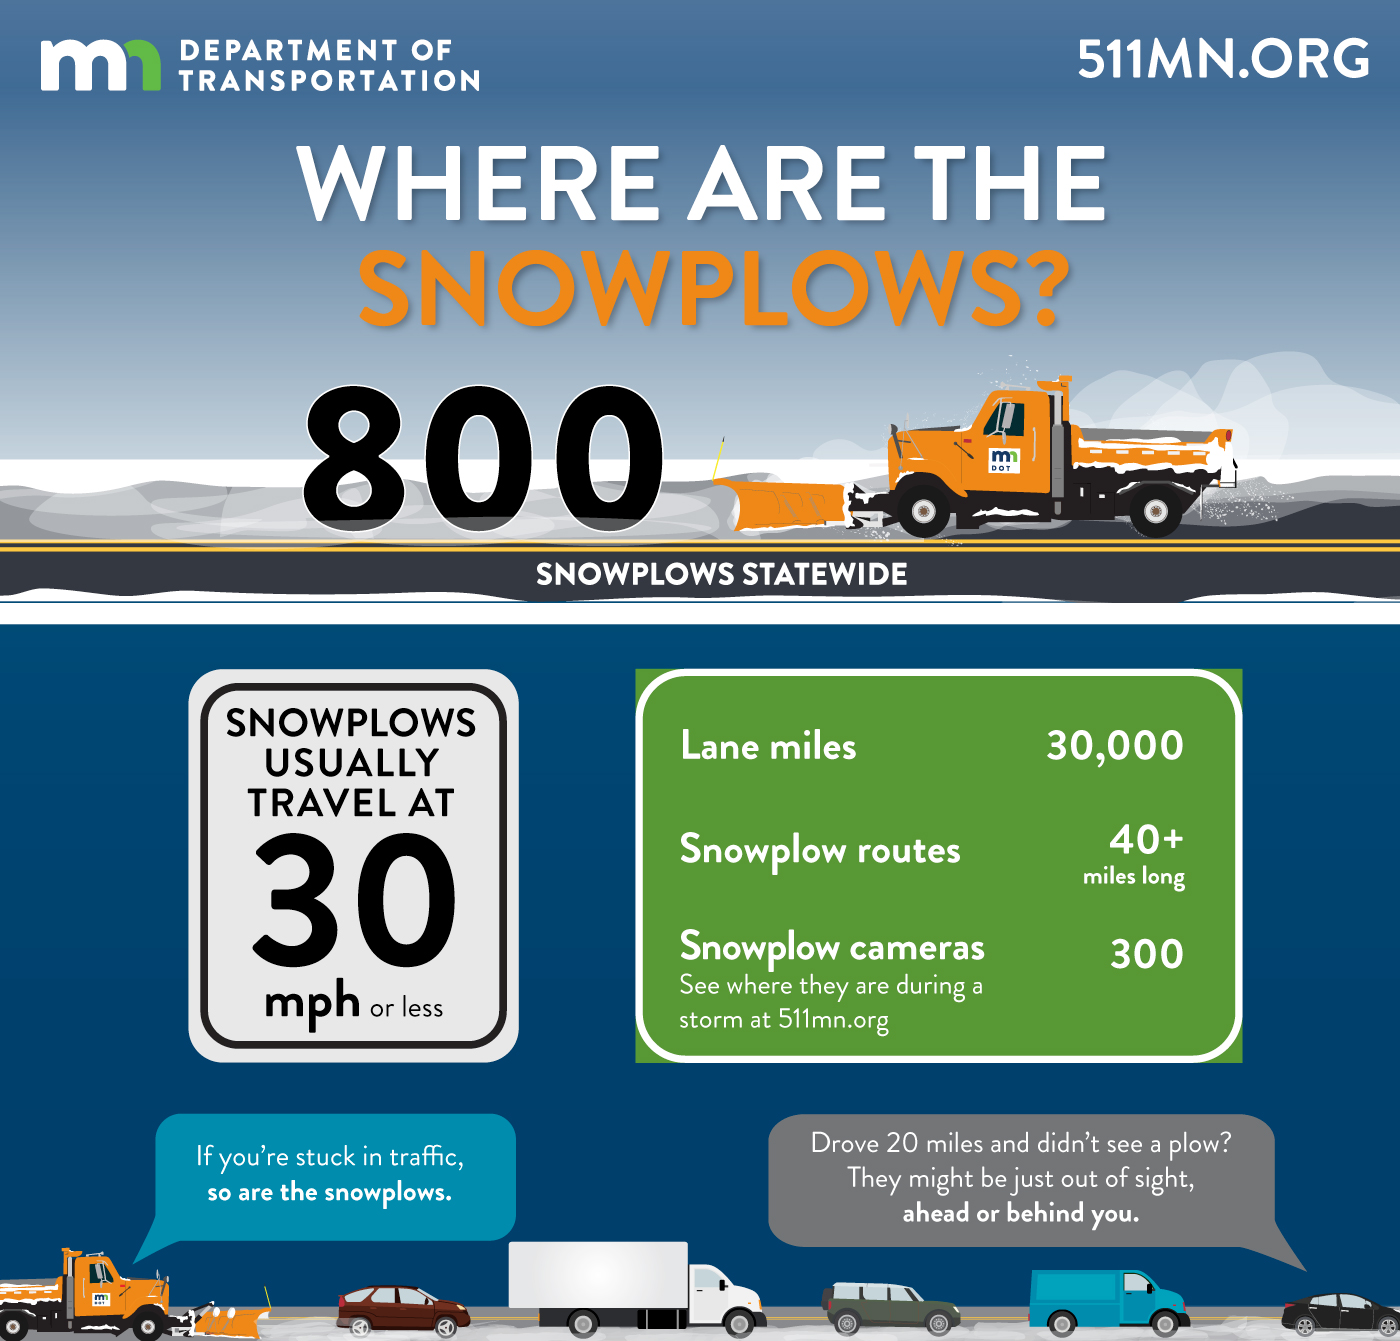 If you are stuck in traffic or drove 20 miles and didn't see a snowplow, remember snowplows may be just out of site, ahead or behind you